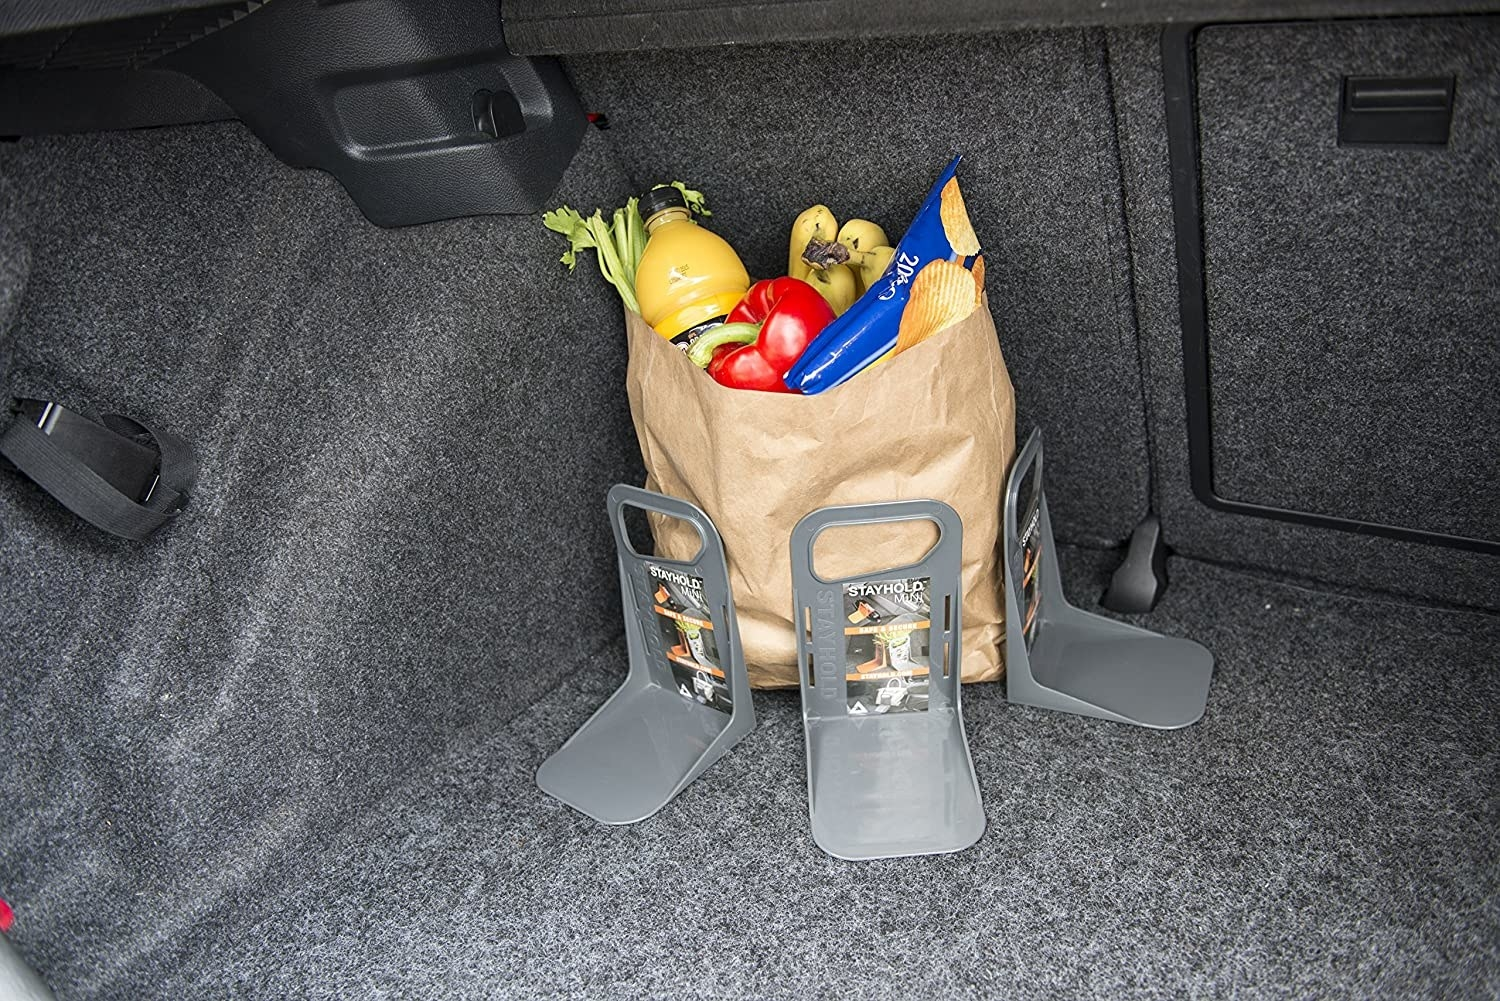 The L-shaped tools holding up a paper bag of groceries in a trunk